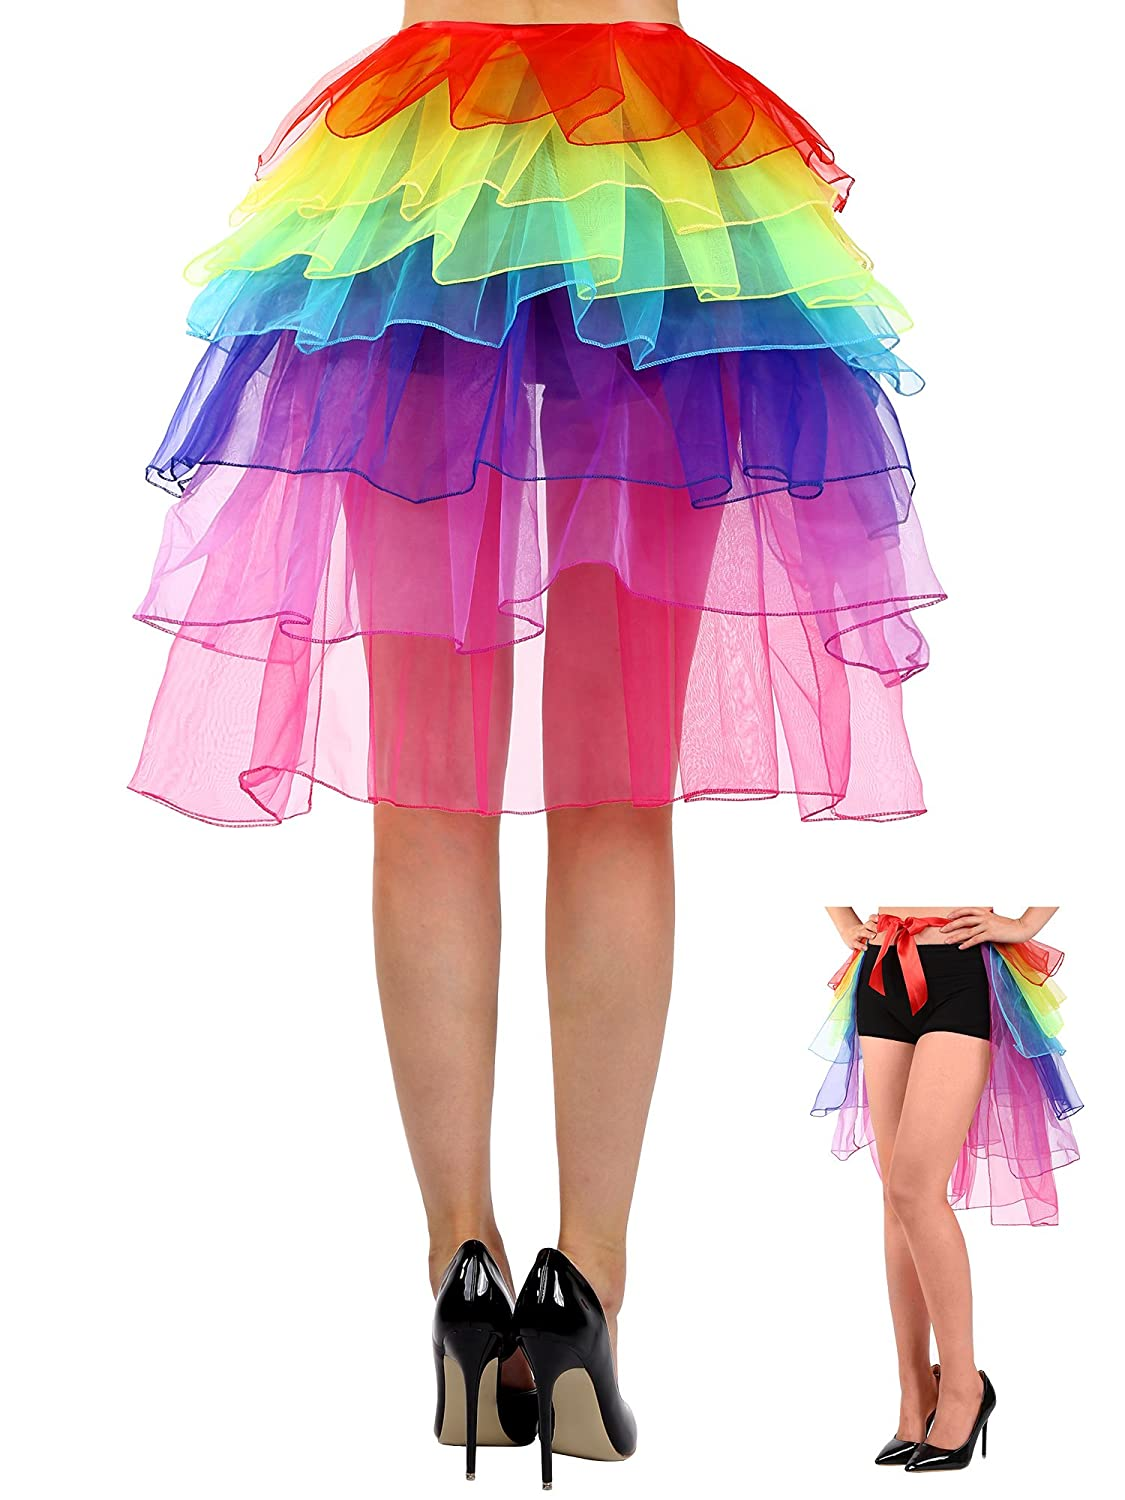 Satinior Lingerie Bubble Skirt Women's Layered Tulle Dancing Bustle Skirt, Rainbow, One Size